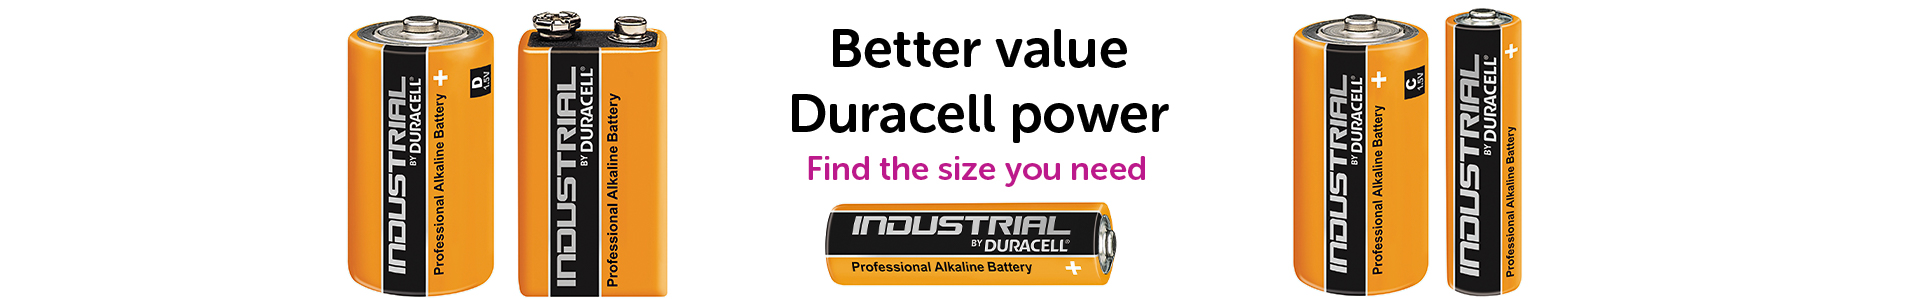 Industrial batteries by Duracell